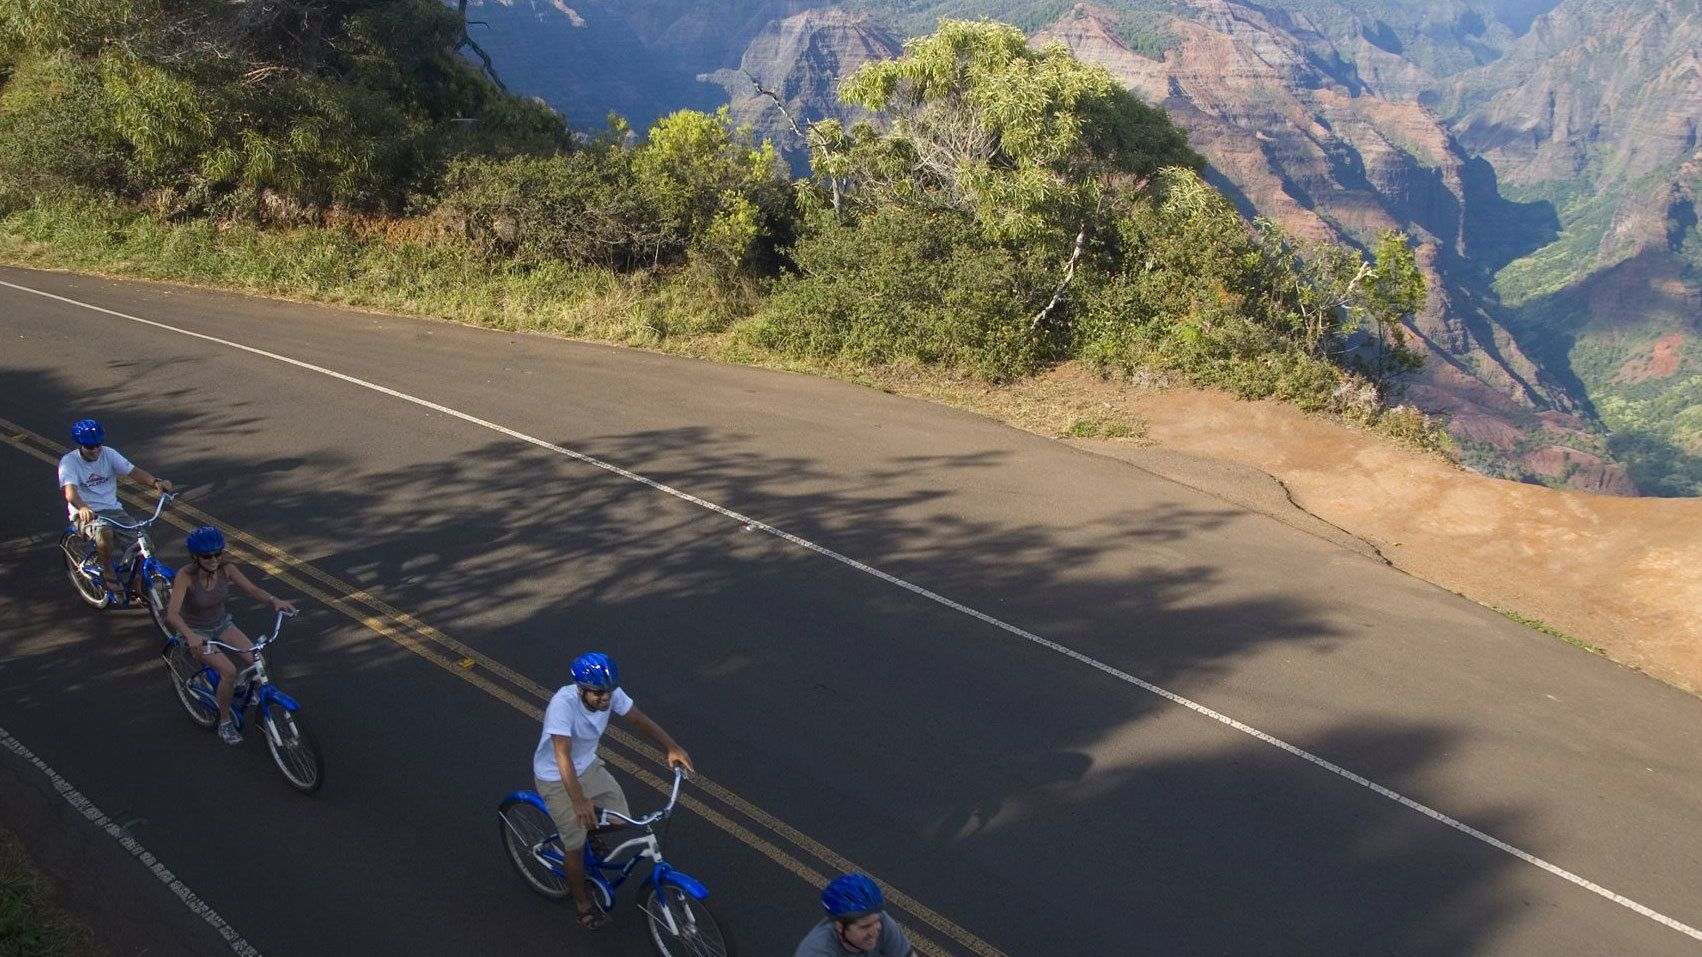 four people on bikes riding down street in Kauai